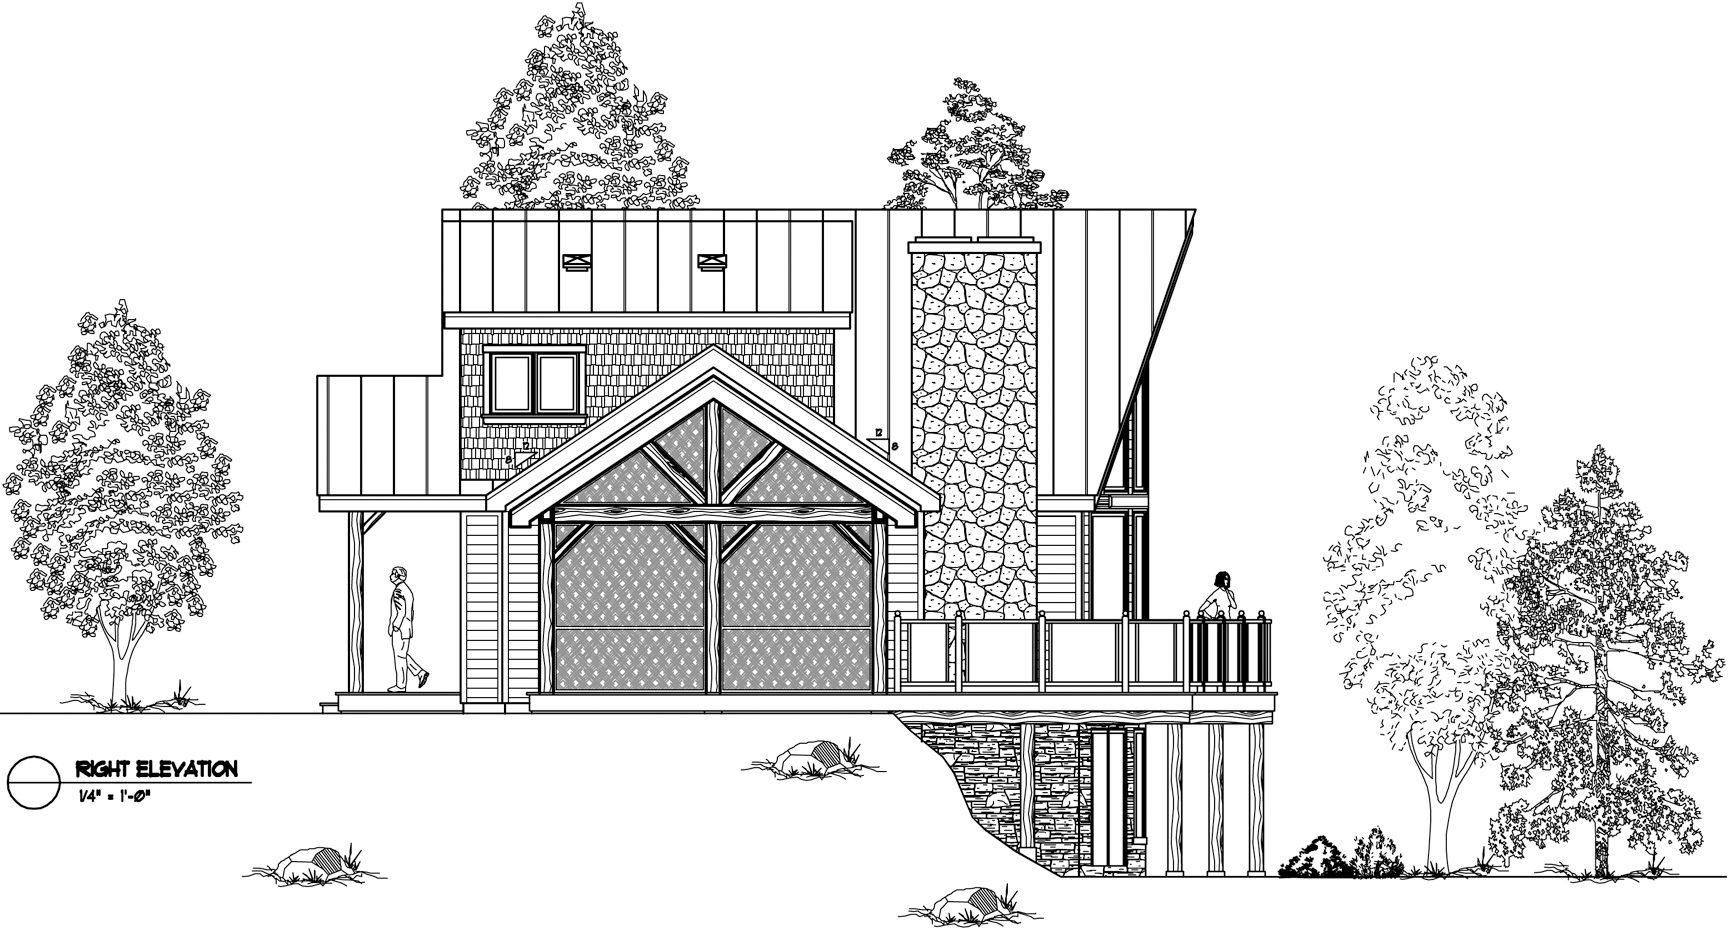 Normerica Timber Frames, House Plan, The Lennox 3546, Right Elevation